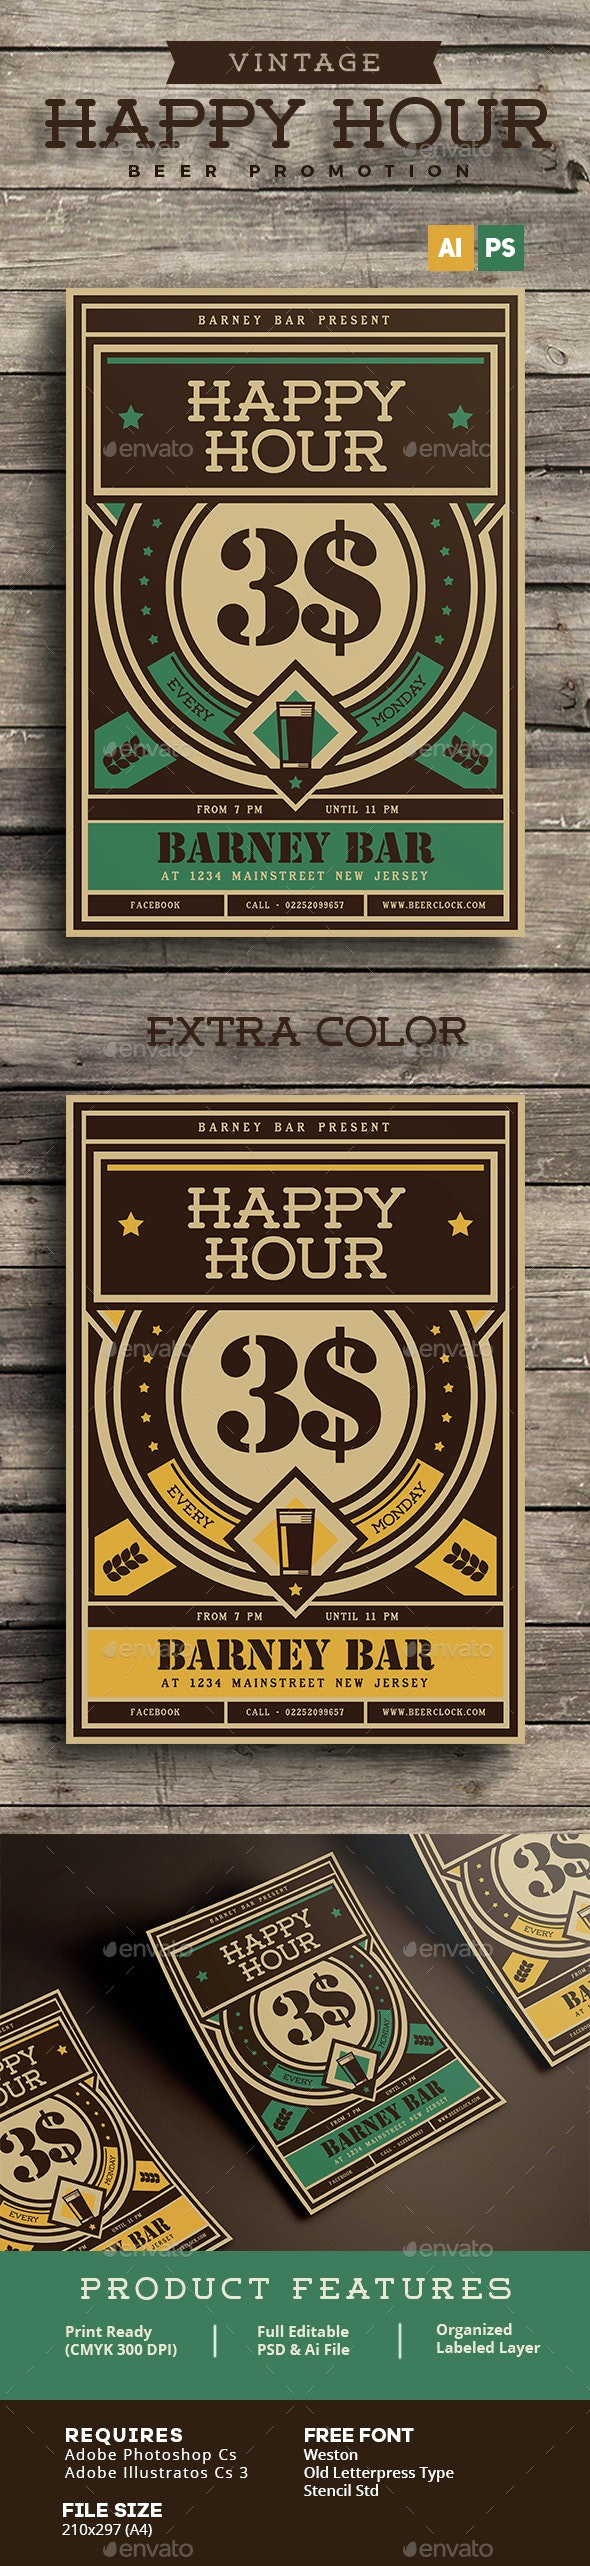 Vintage Happy Hour Beer Promotion - Events Flyers